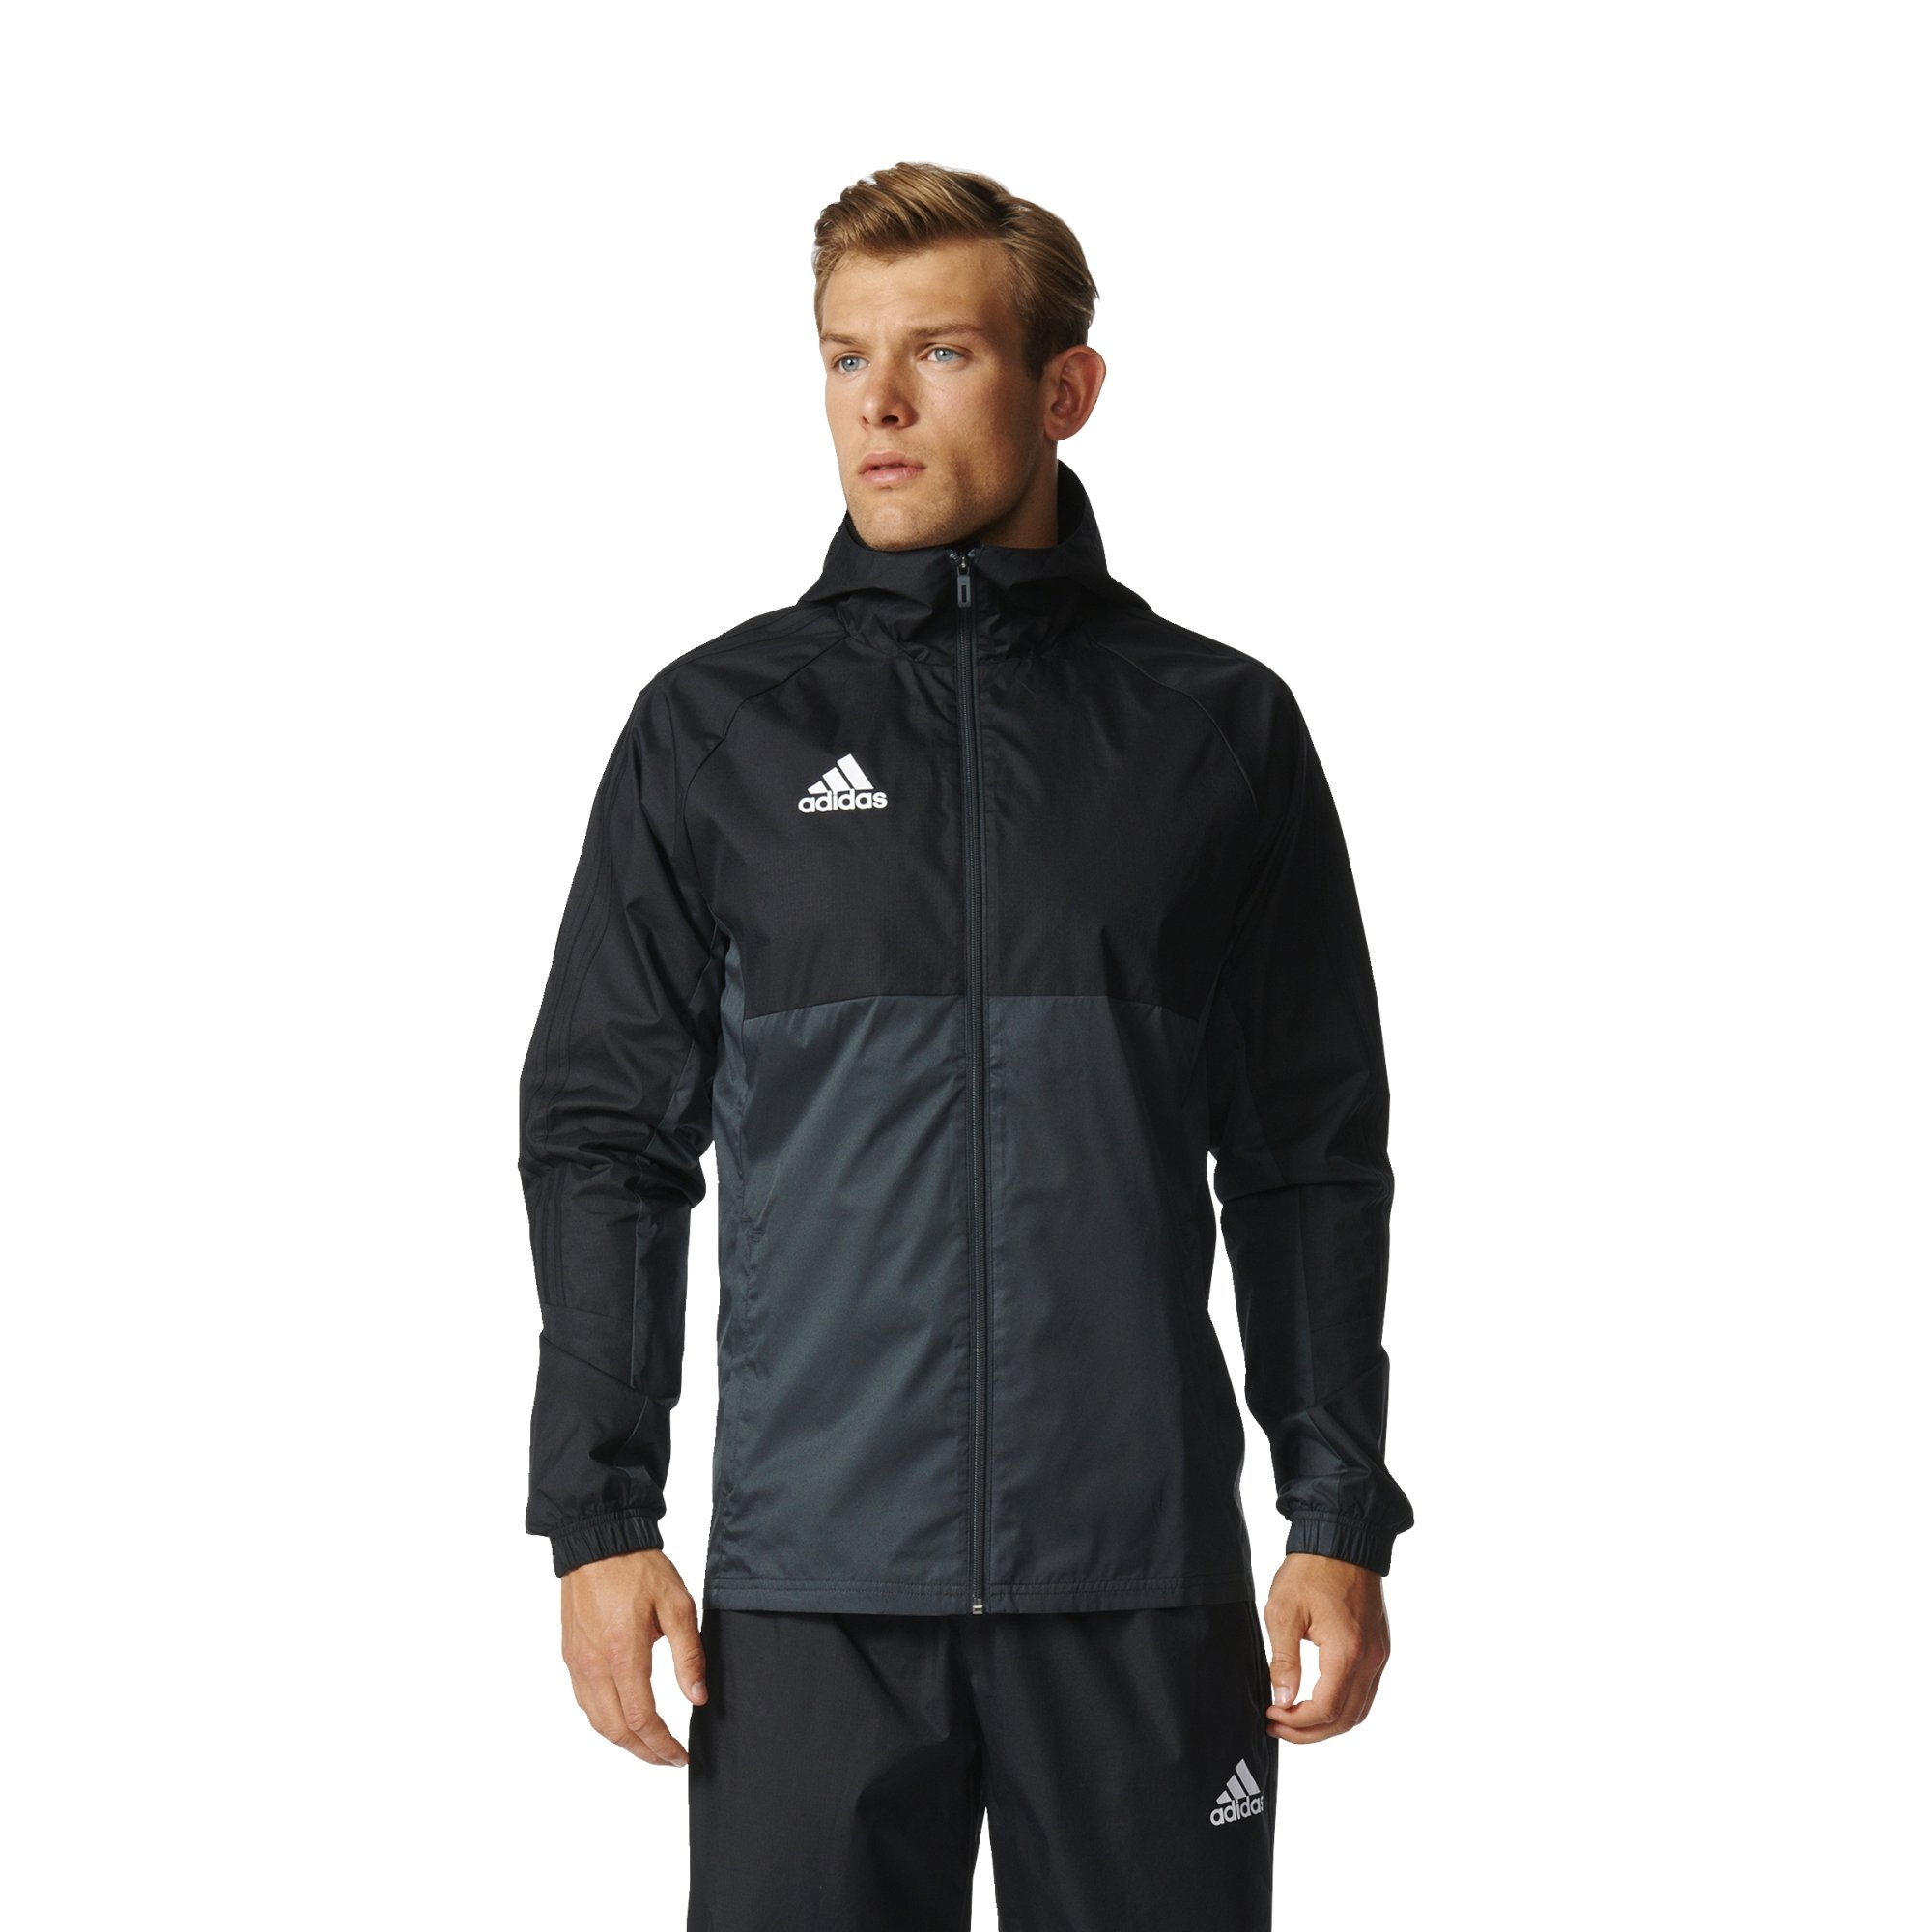 Adidas Tiro 17 Mens Soccer Rain Jacket XS Black-Dark Grey-White by adidas